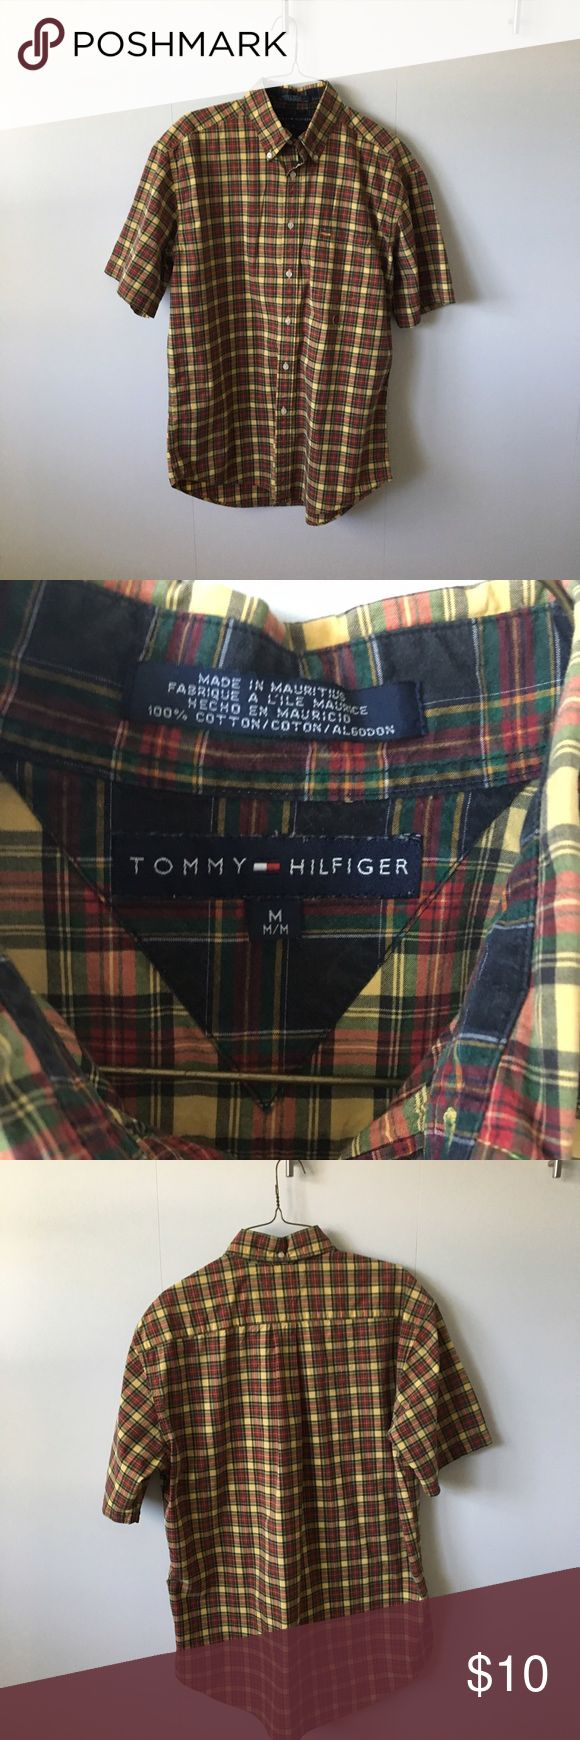 Tommy Hilfiger Shirt 100%Cotton short sleeve shirt. Nice & cool for the summer. Nice color combination and looks great  with jeans & boots! Tommy Hilfiger Shirts Casual Button Down Shirts